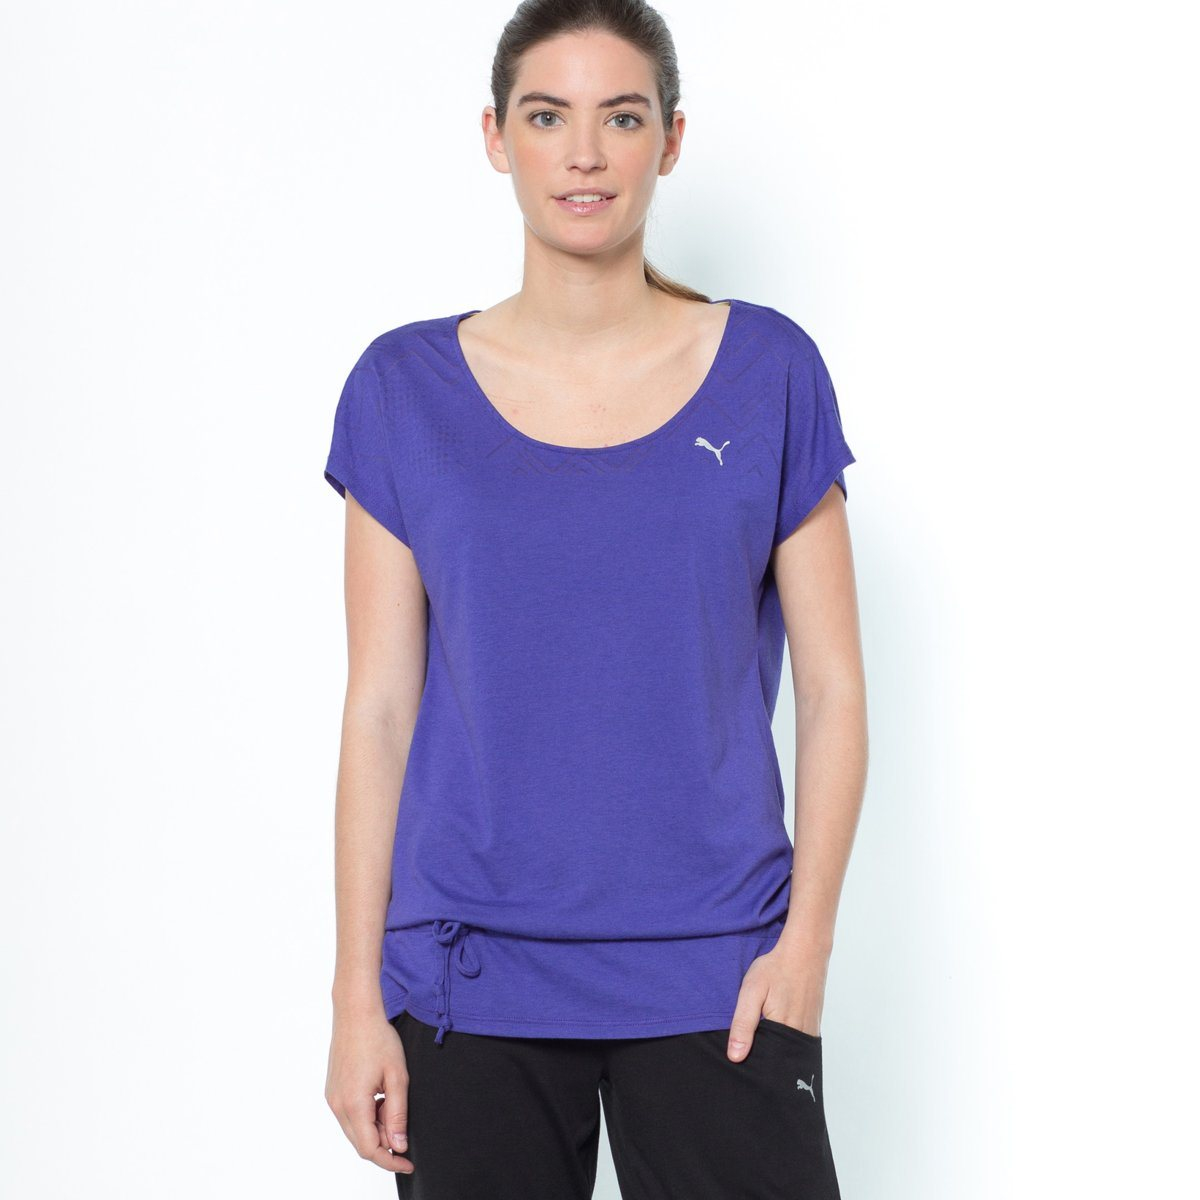 Best prices on Short sleeve tunic in Women's T-Shirts online. Visit Bizrate to find the best deals on top brands. Read reviews on Clothing & Accessories merchants and buy with confidence.